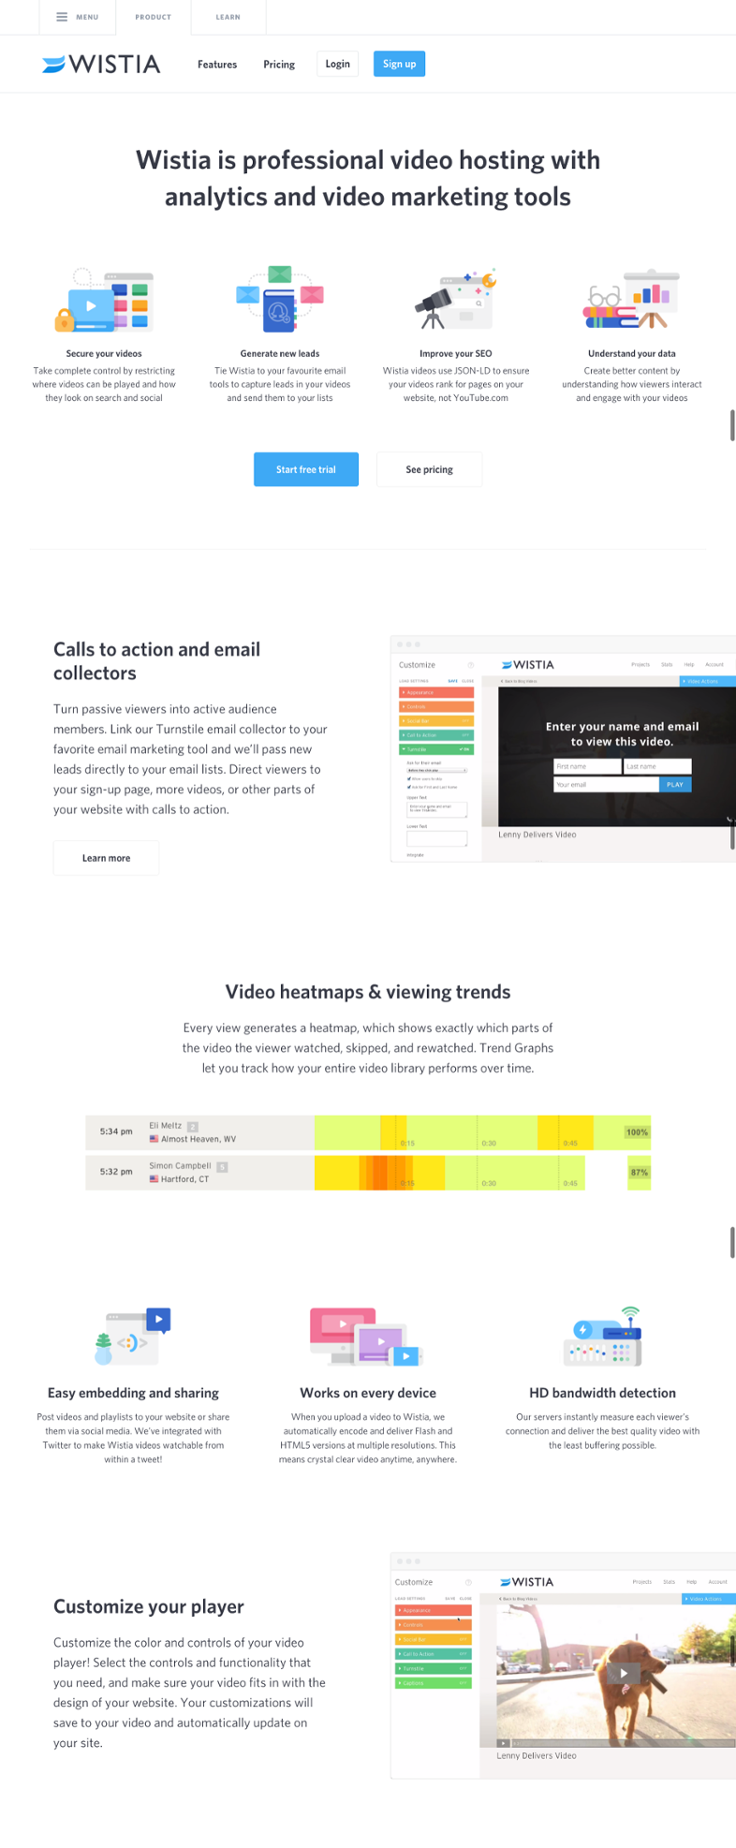 Wistia_Product_Features-227086-edited.png